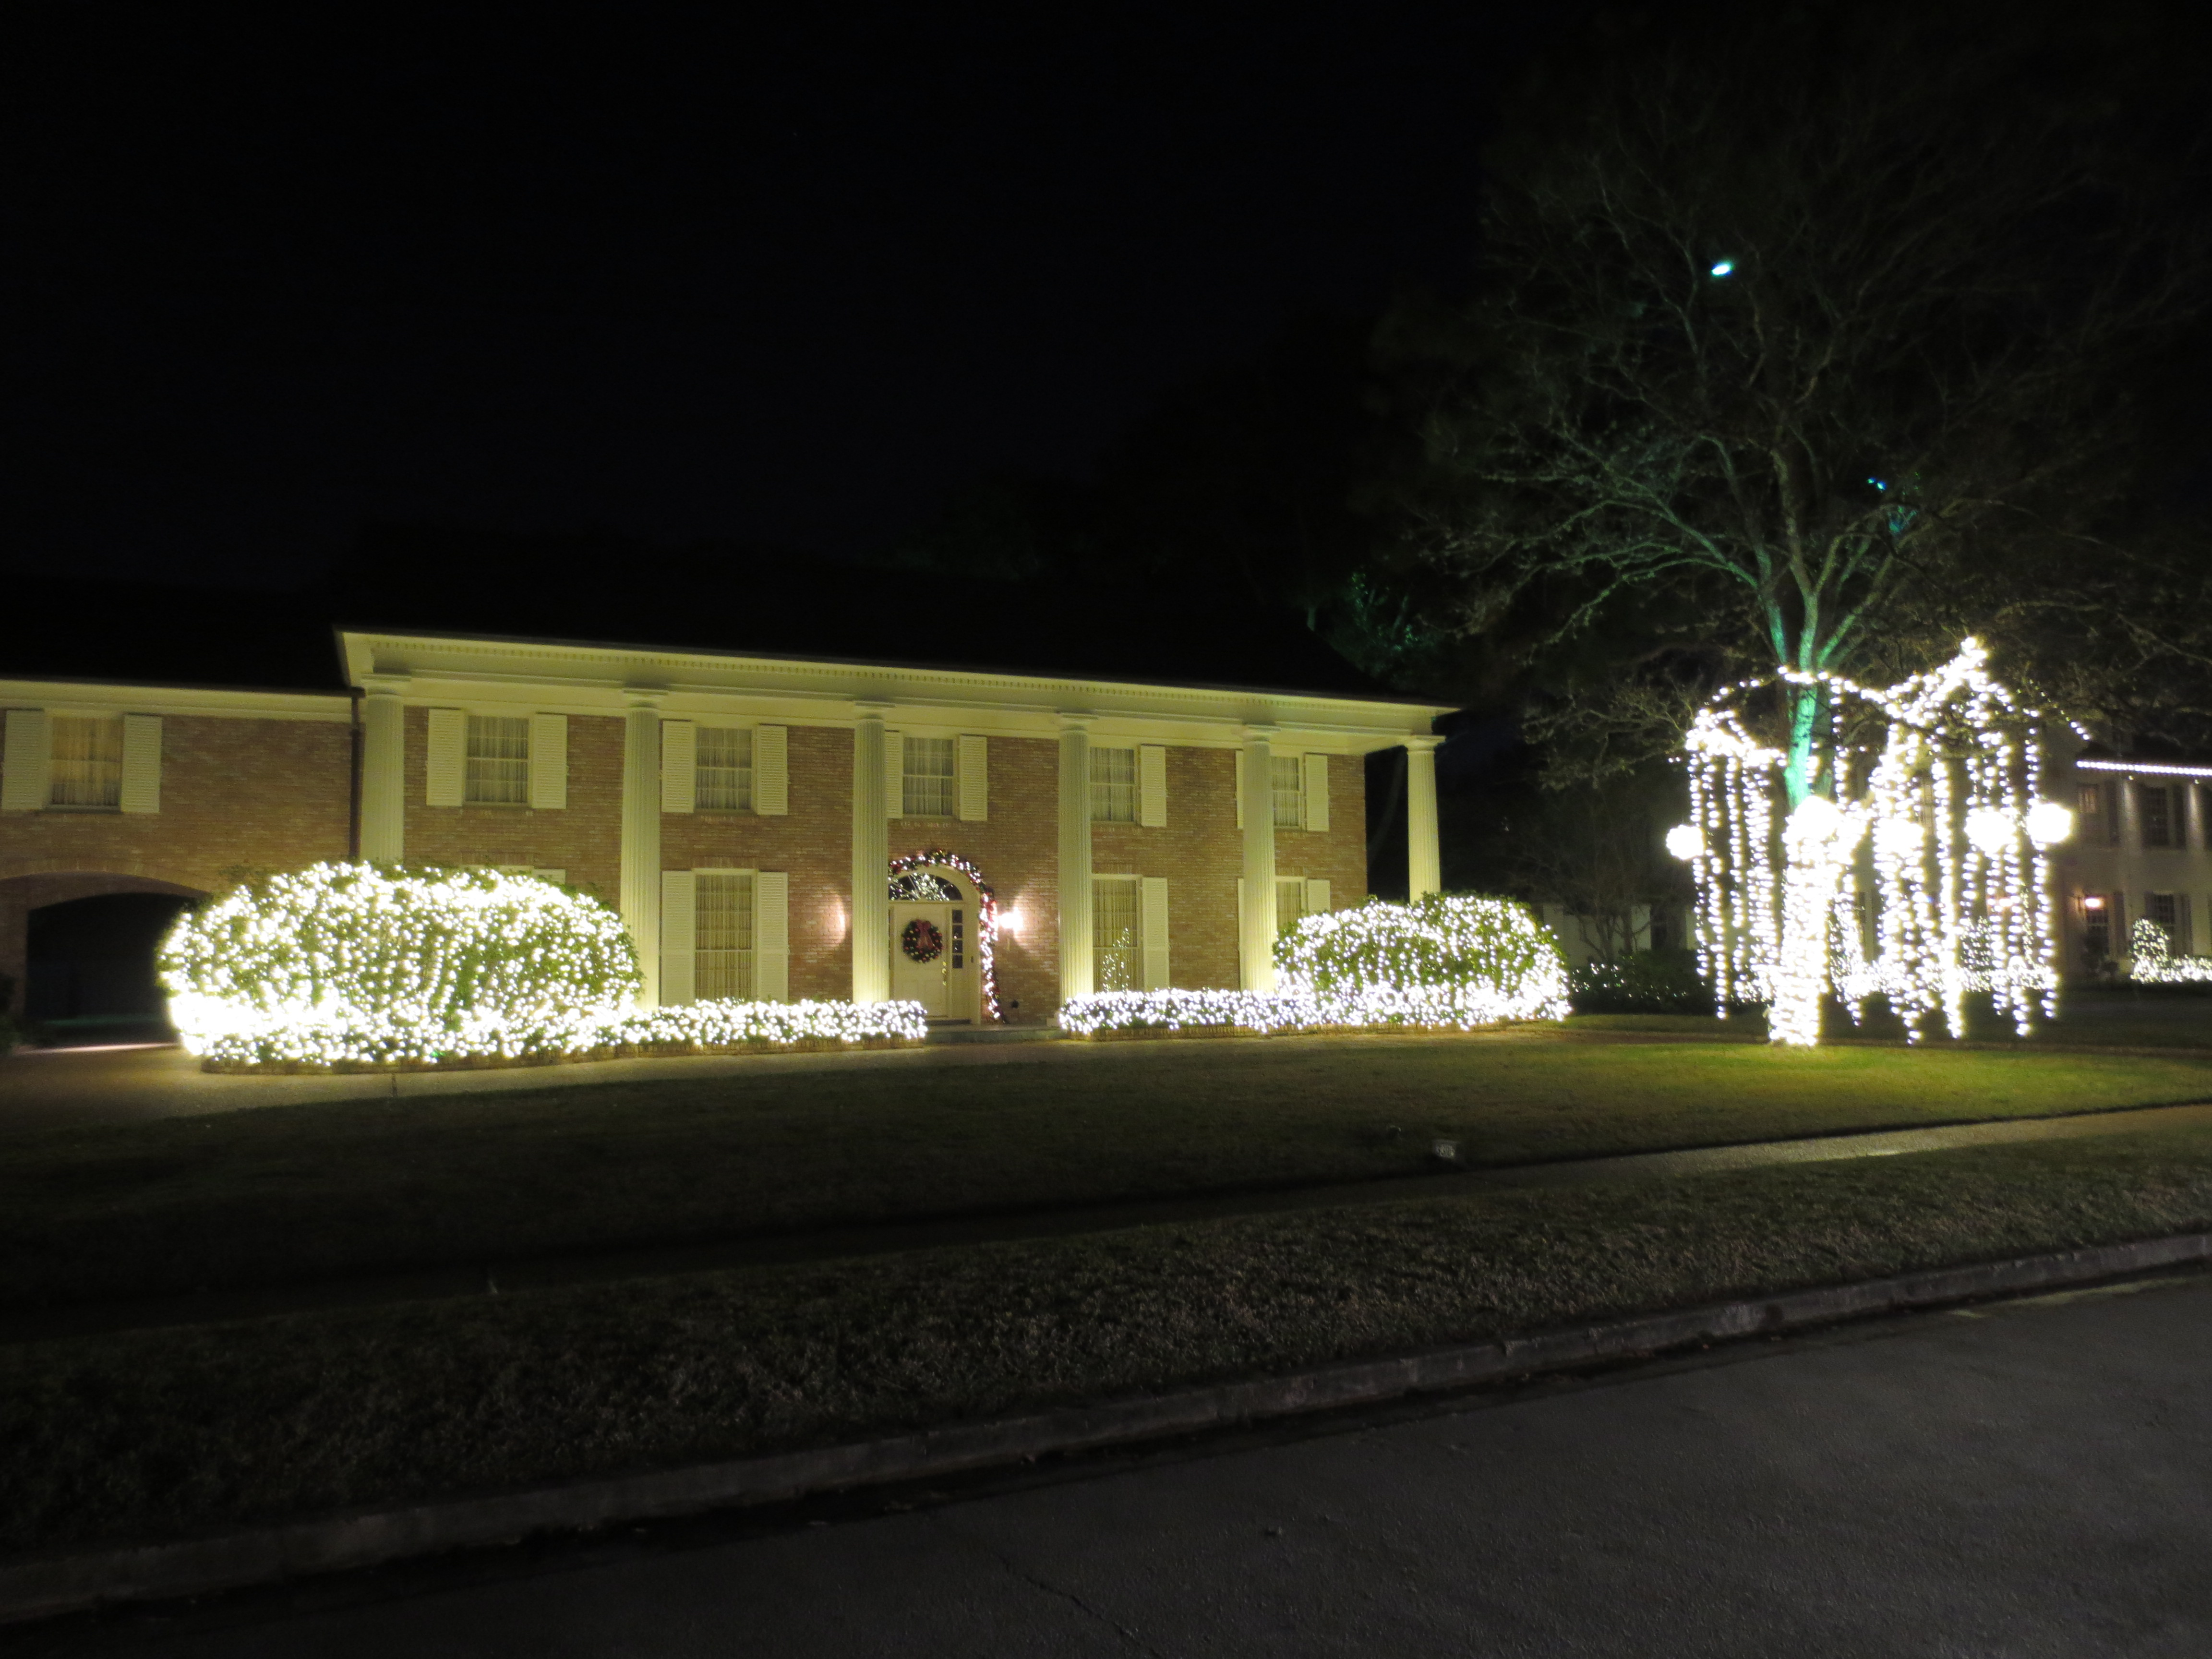 i thought this house looked nice with the light balls hanging from the tree i know im starting to sound like a broken record but say it with me the - Trim A Home Christmas Lights